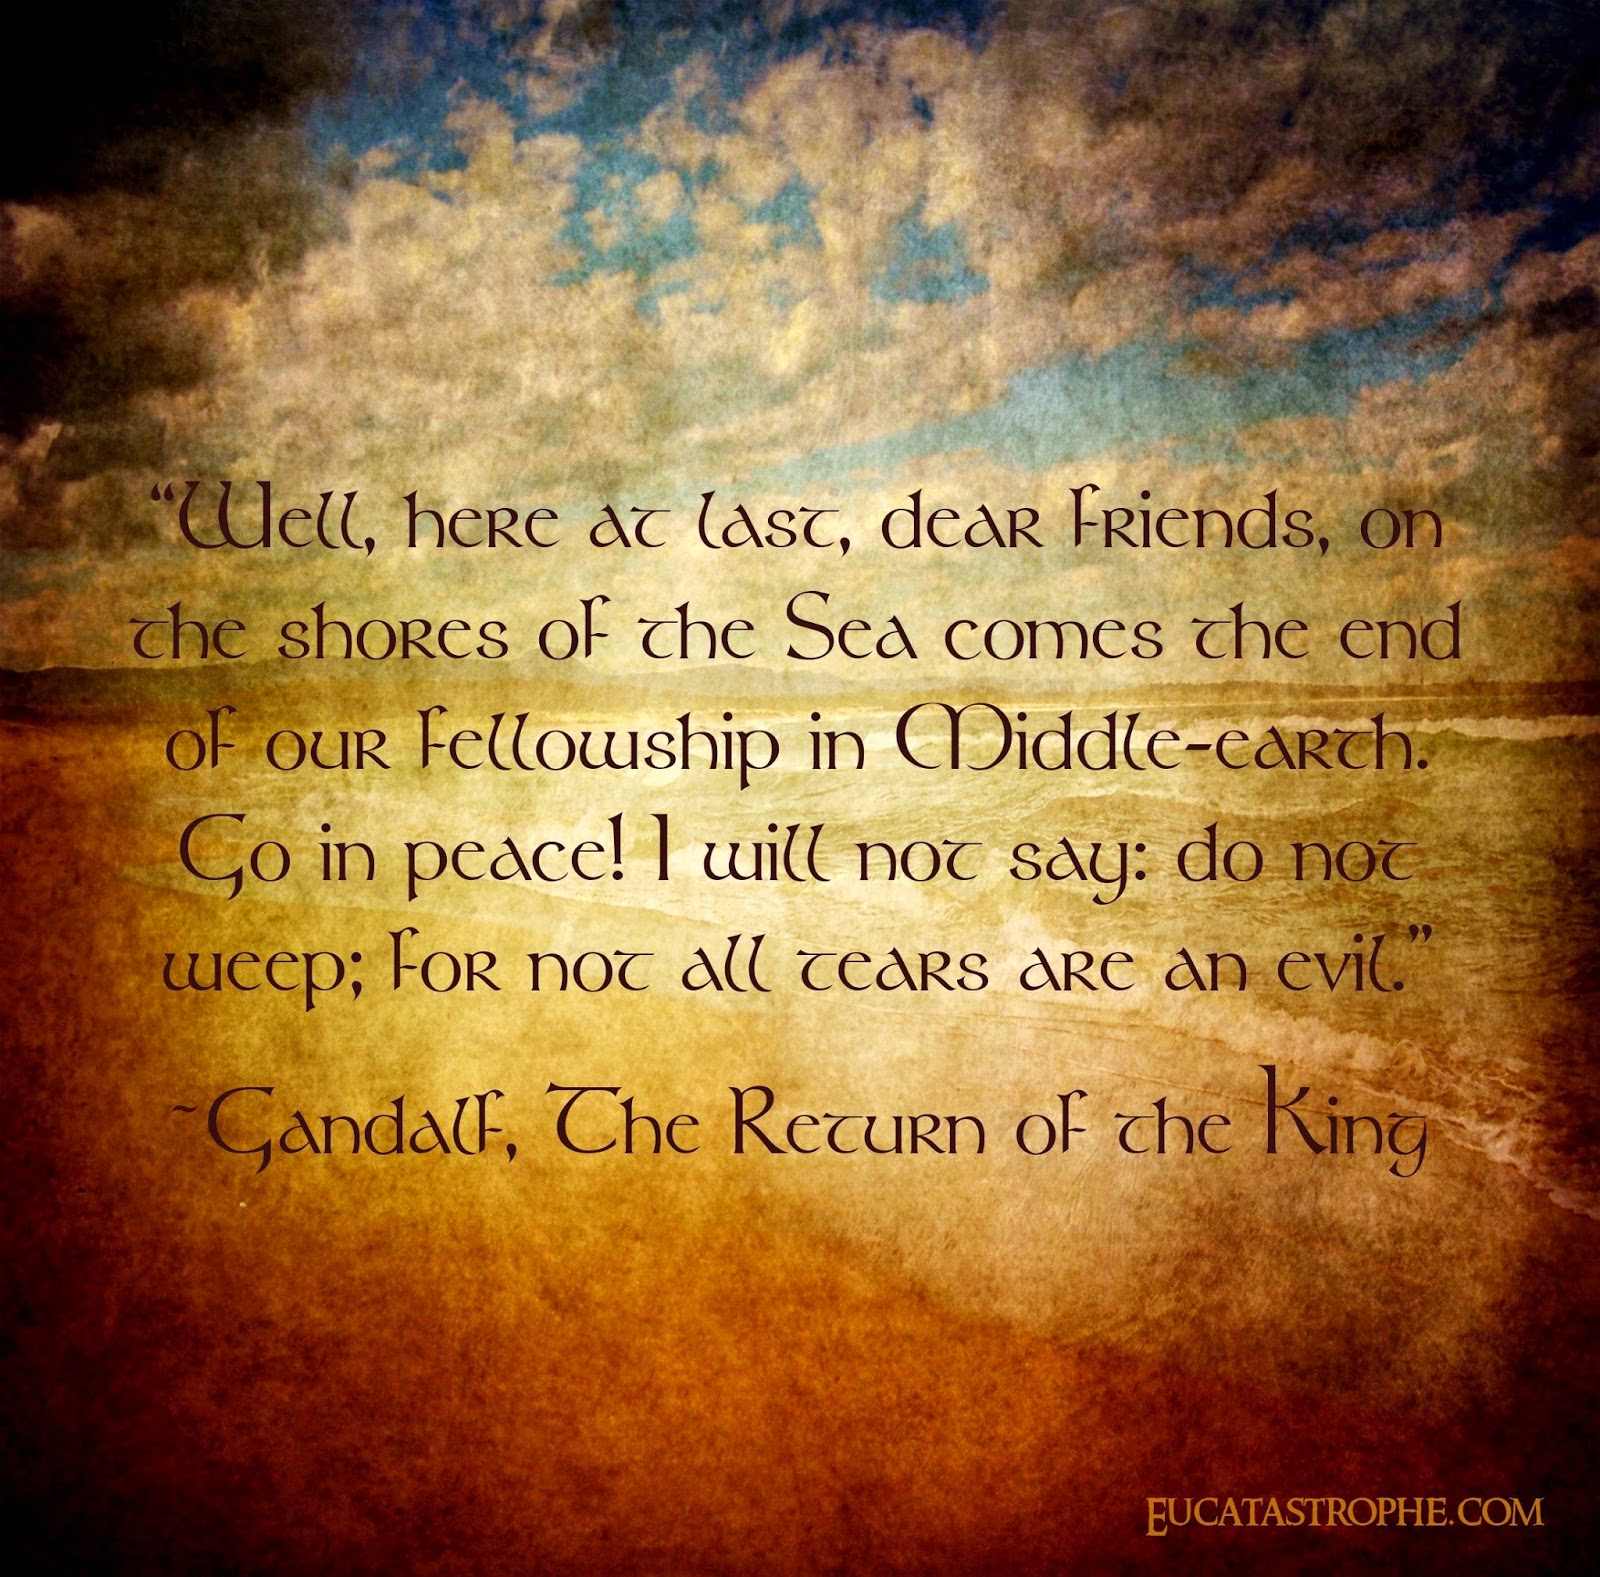 Death Of Loved One Quotes Friendship Quotes After Death The Friendship Rises In Heart And